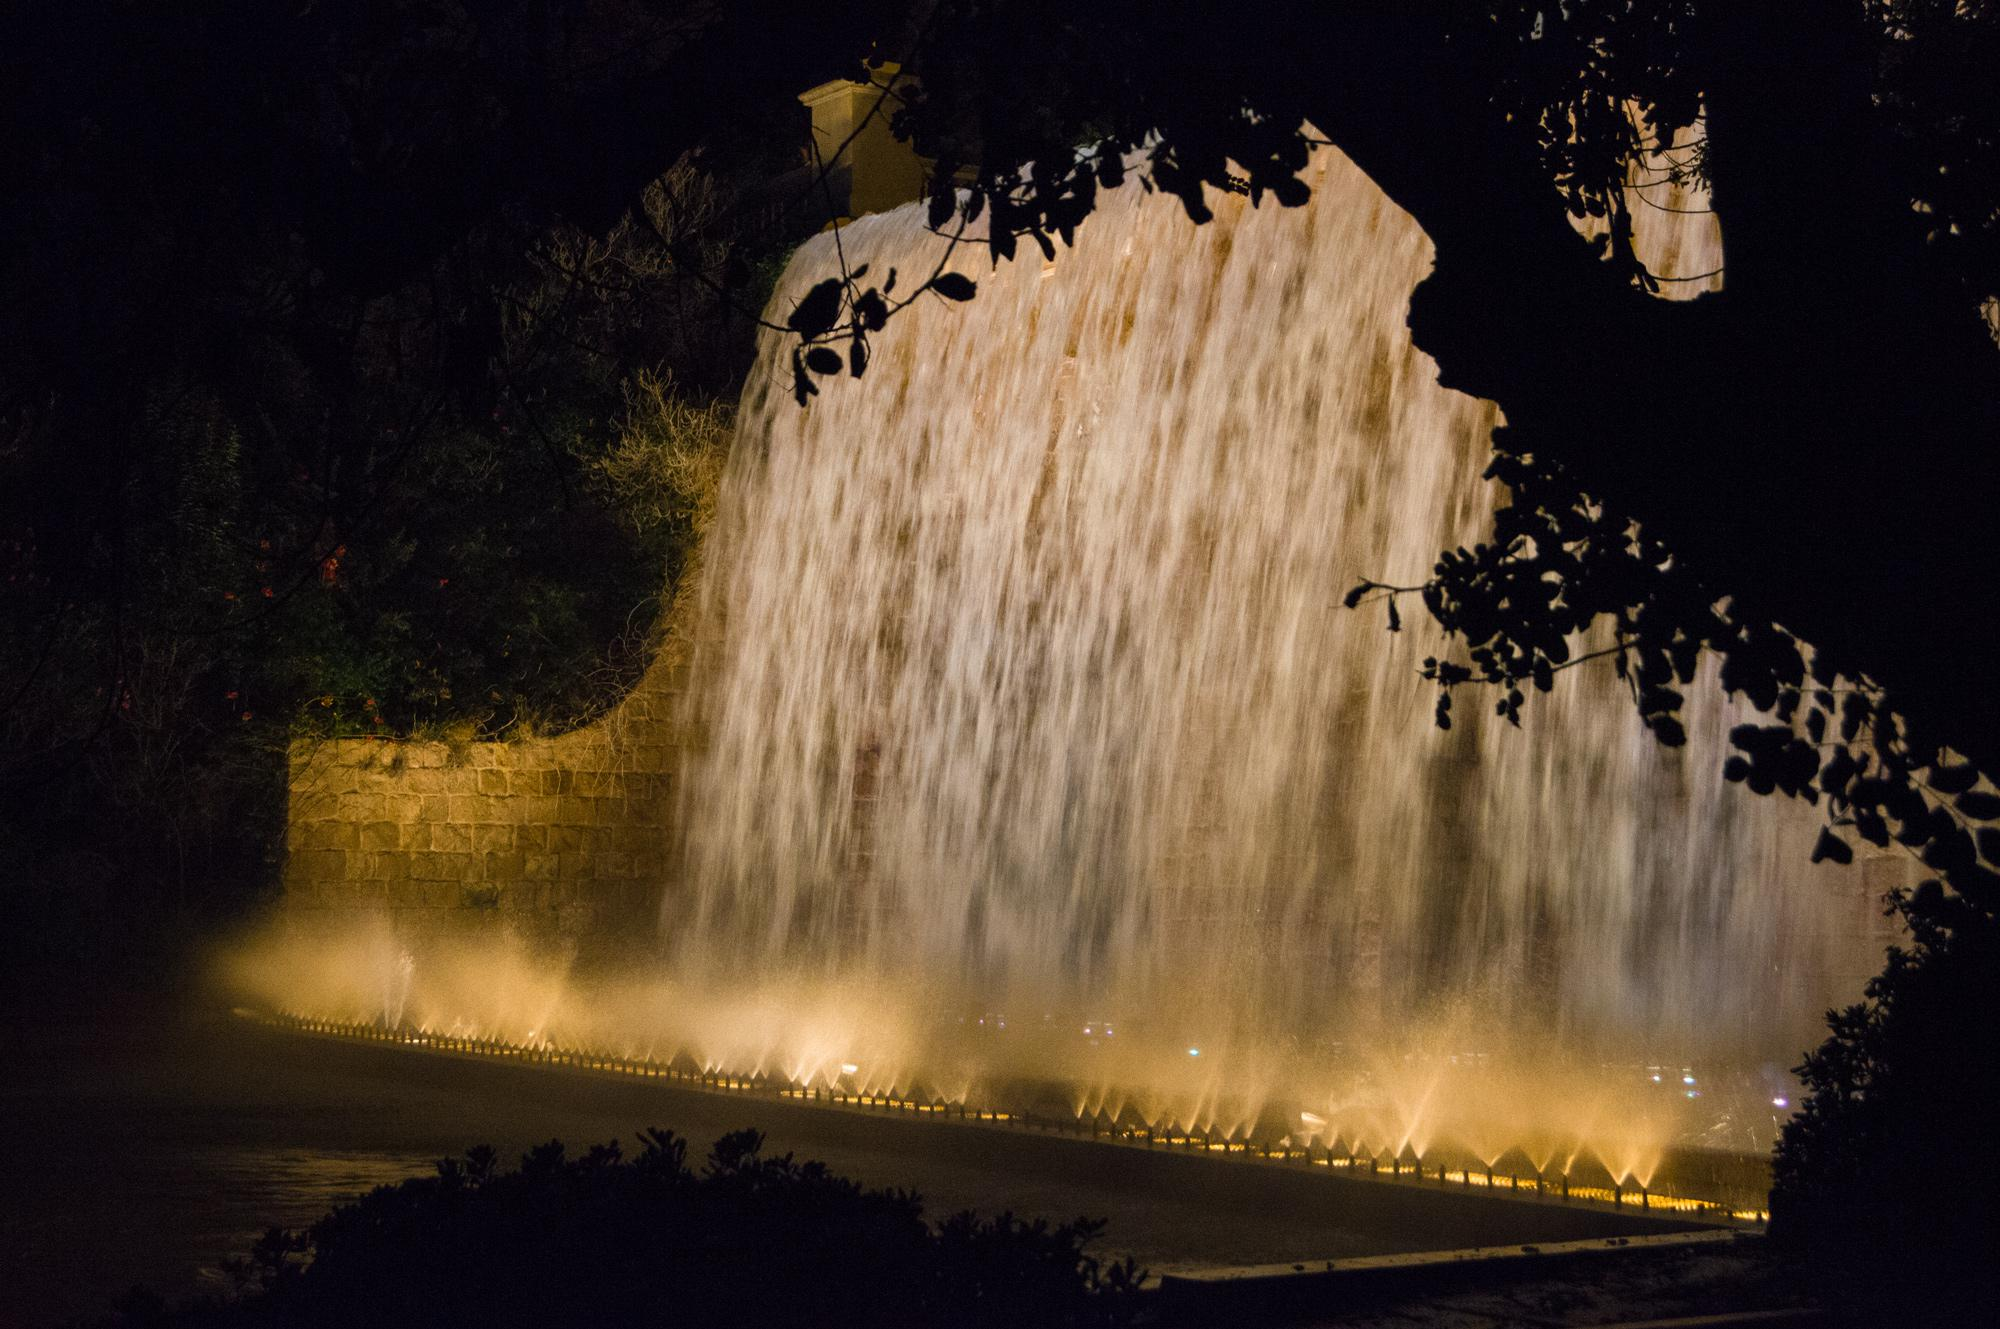 Part of the water cascade near the National Museum of Art of Catalonia on Montjuïc in Barcelona